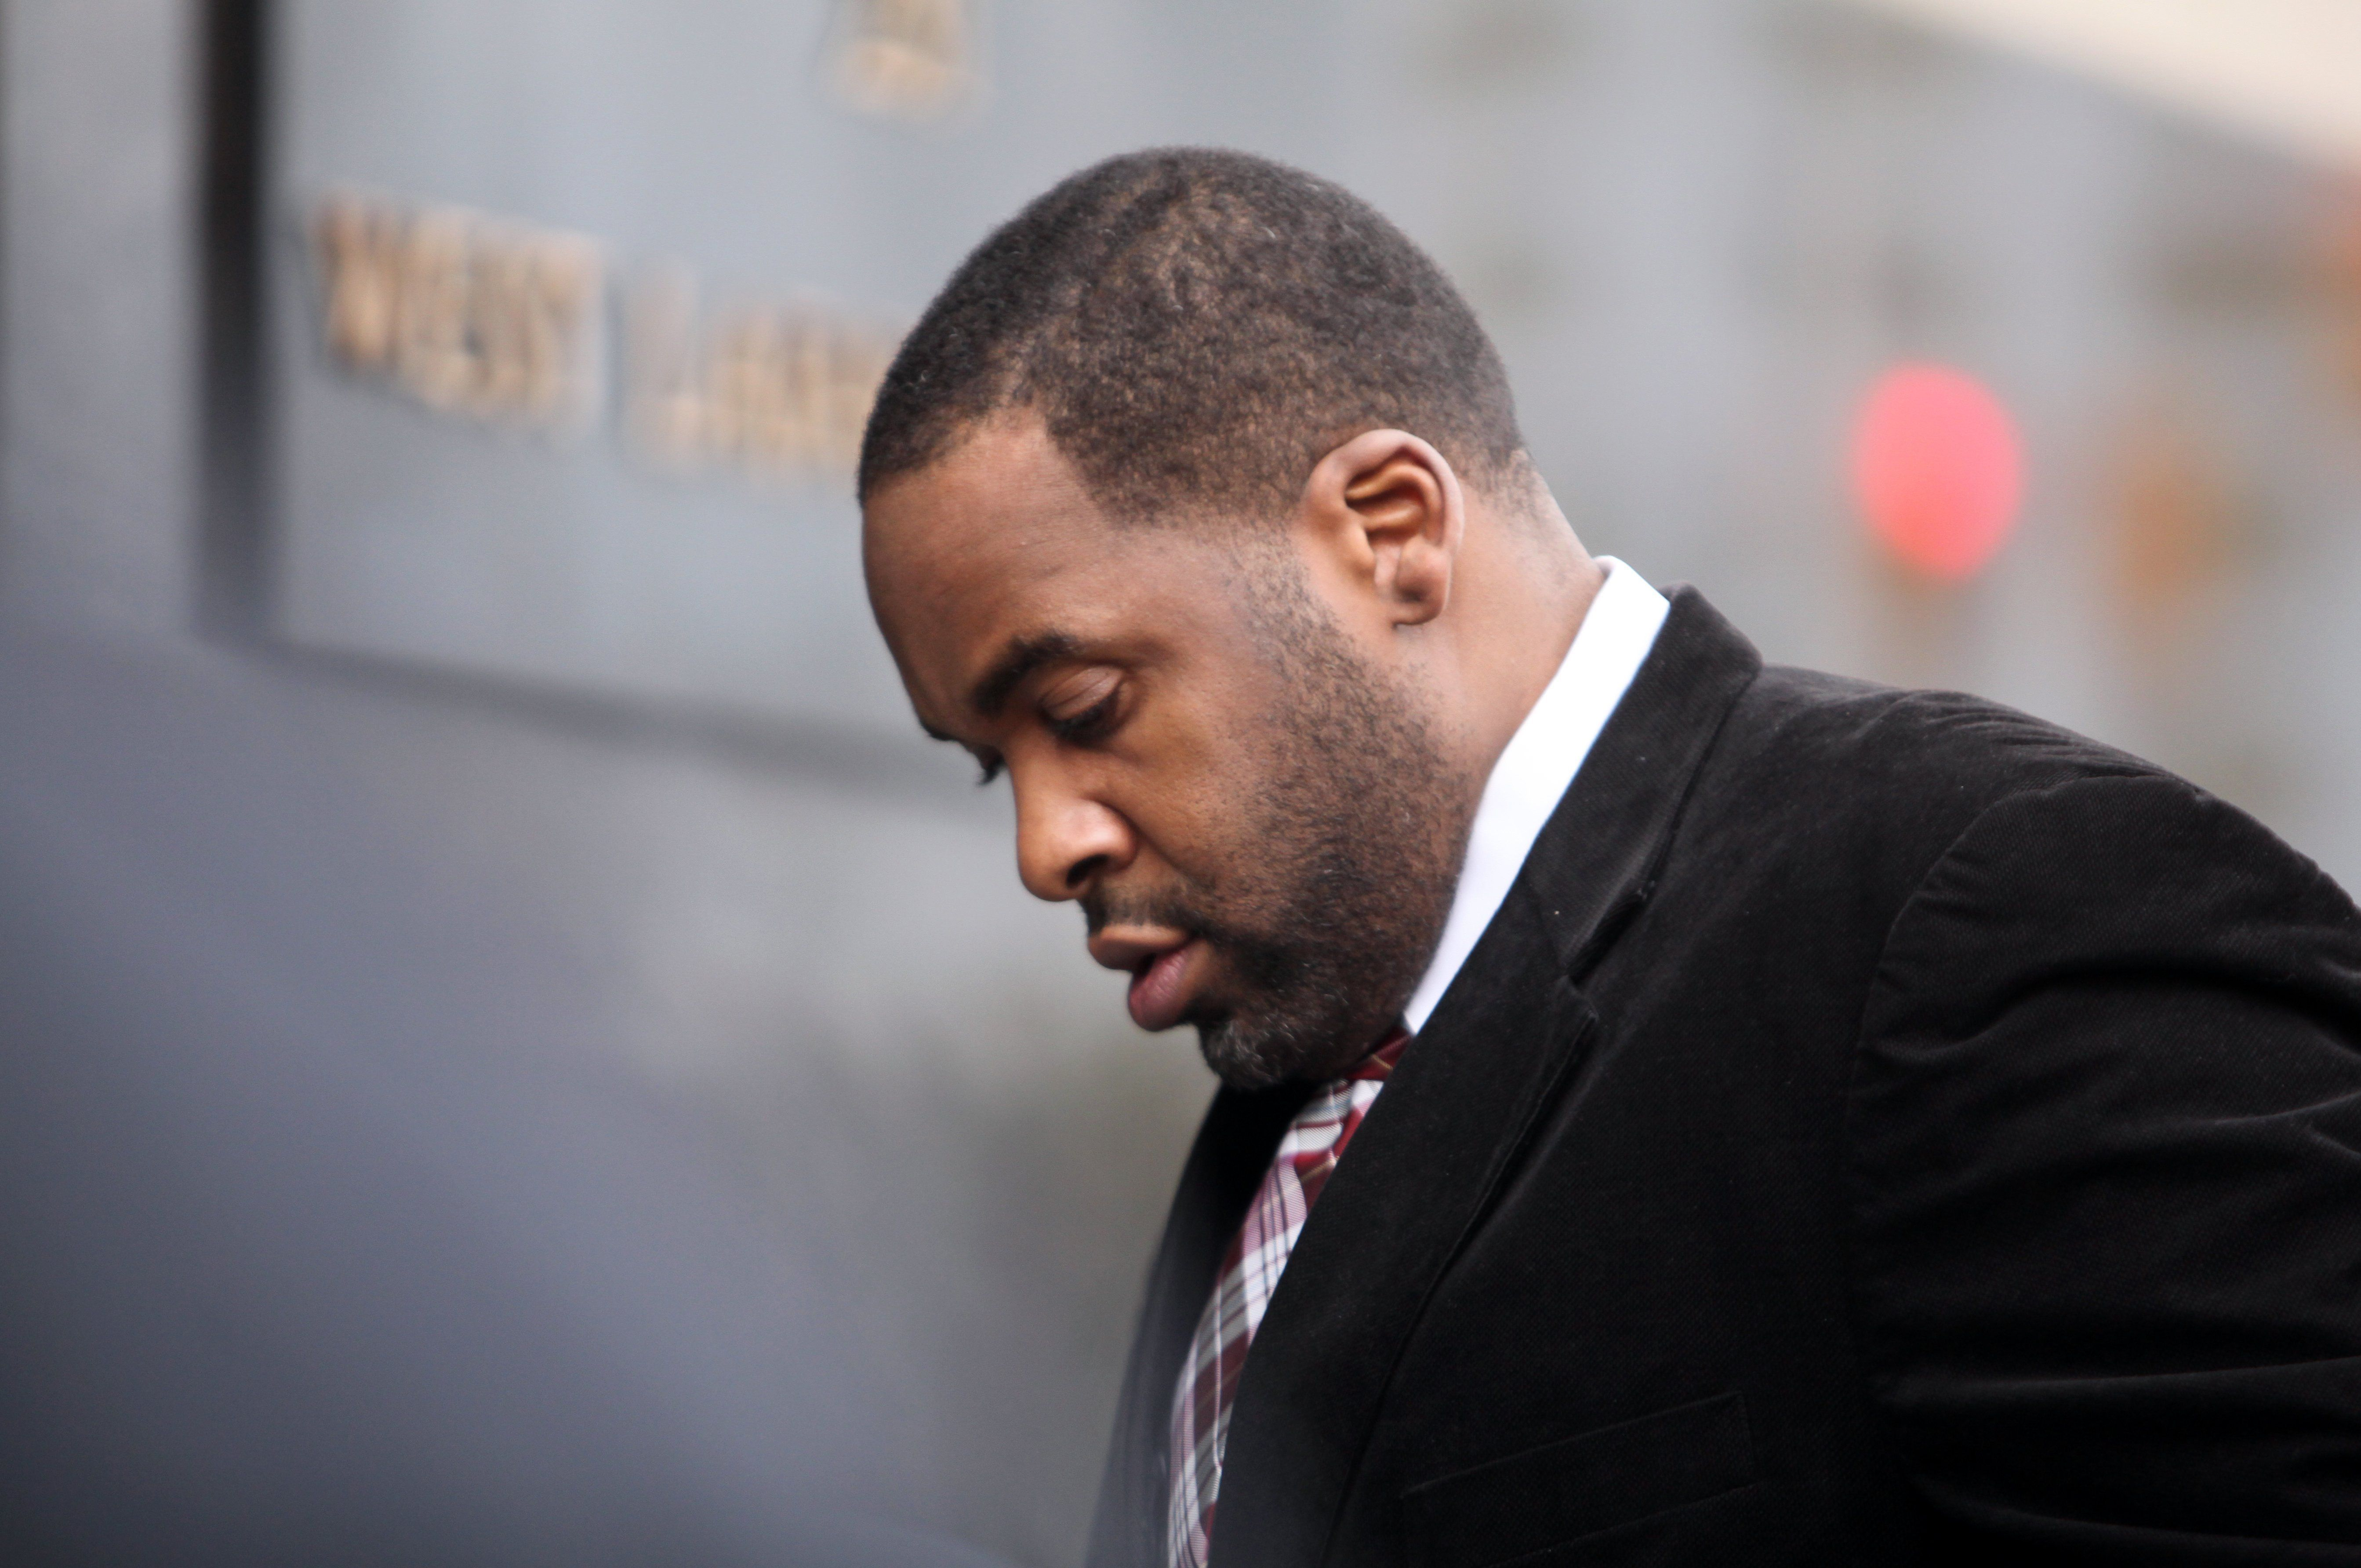 Former Detroit mayor Kwame Kilpatrick, pictured on Monday, March 11, 2013.